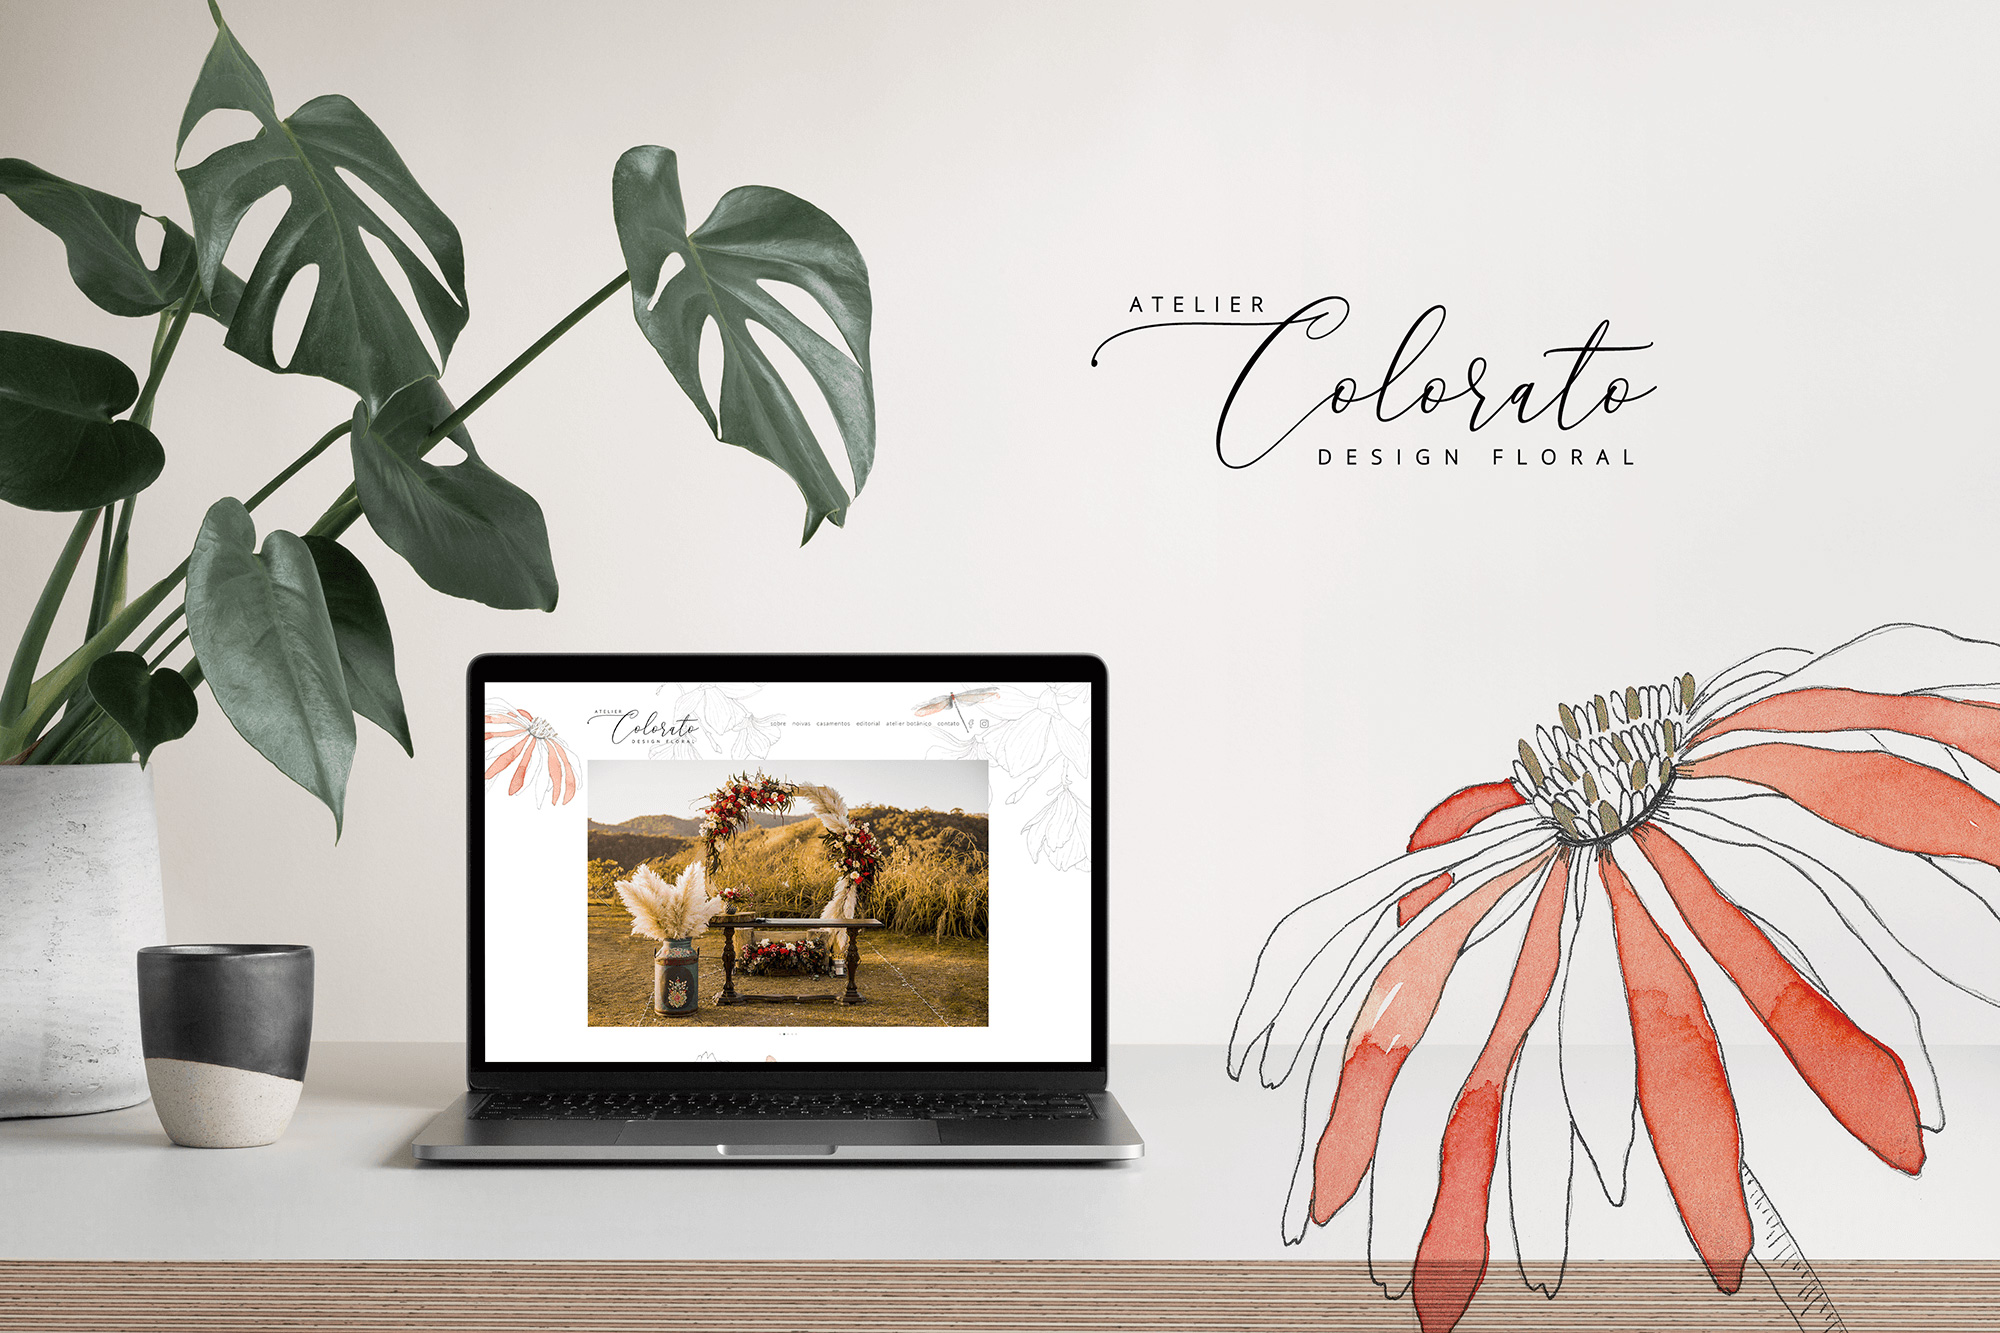 Website Layout exclusivo para Atelier Colorato - Design by Adrielly Sato